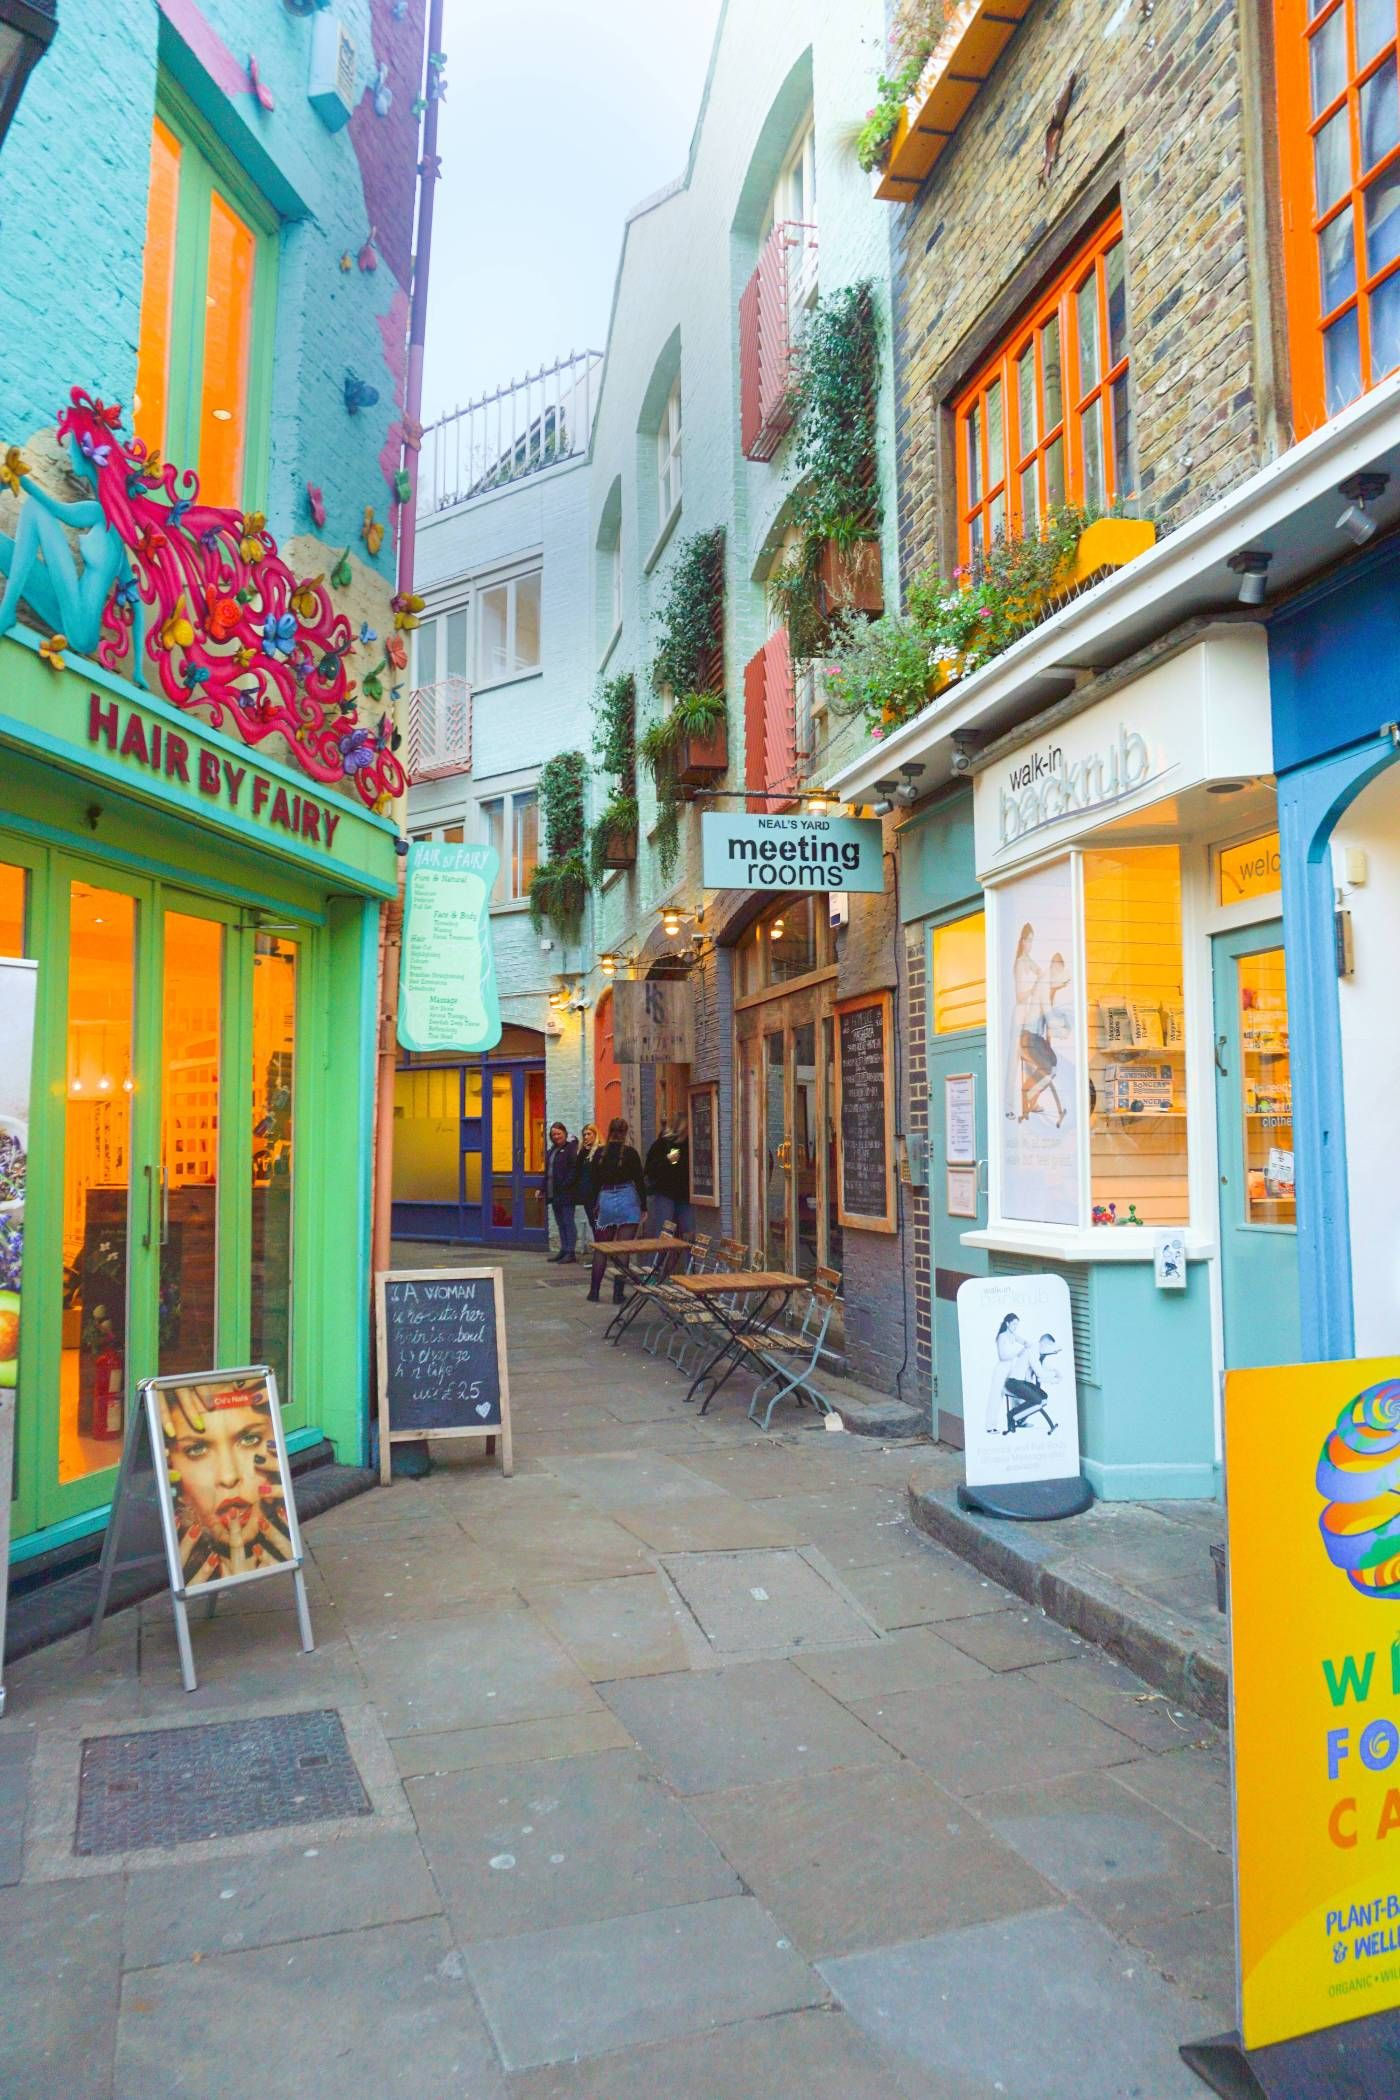 Neal's Yard in Covent Garden is the most unique London street